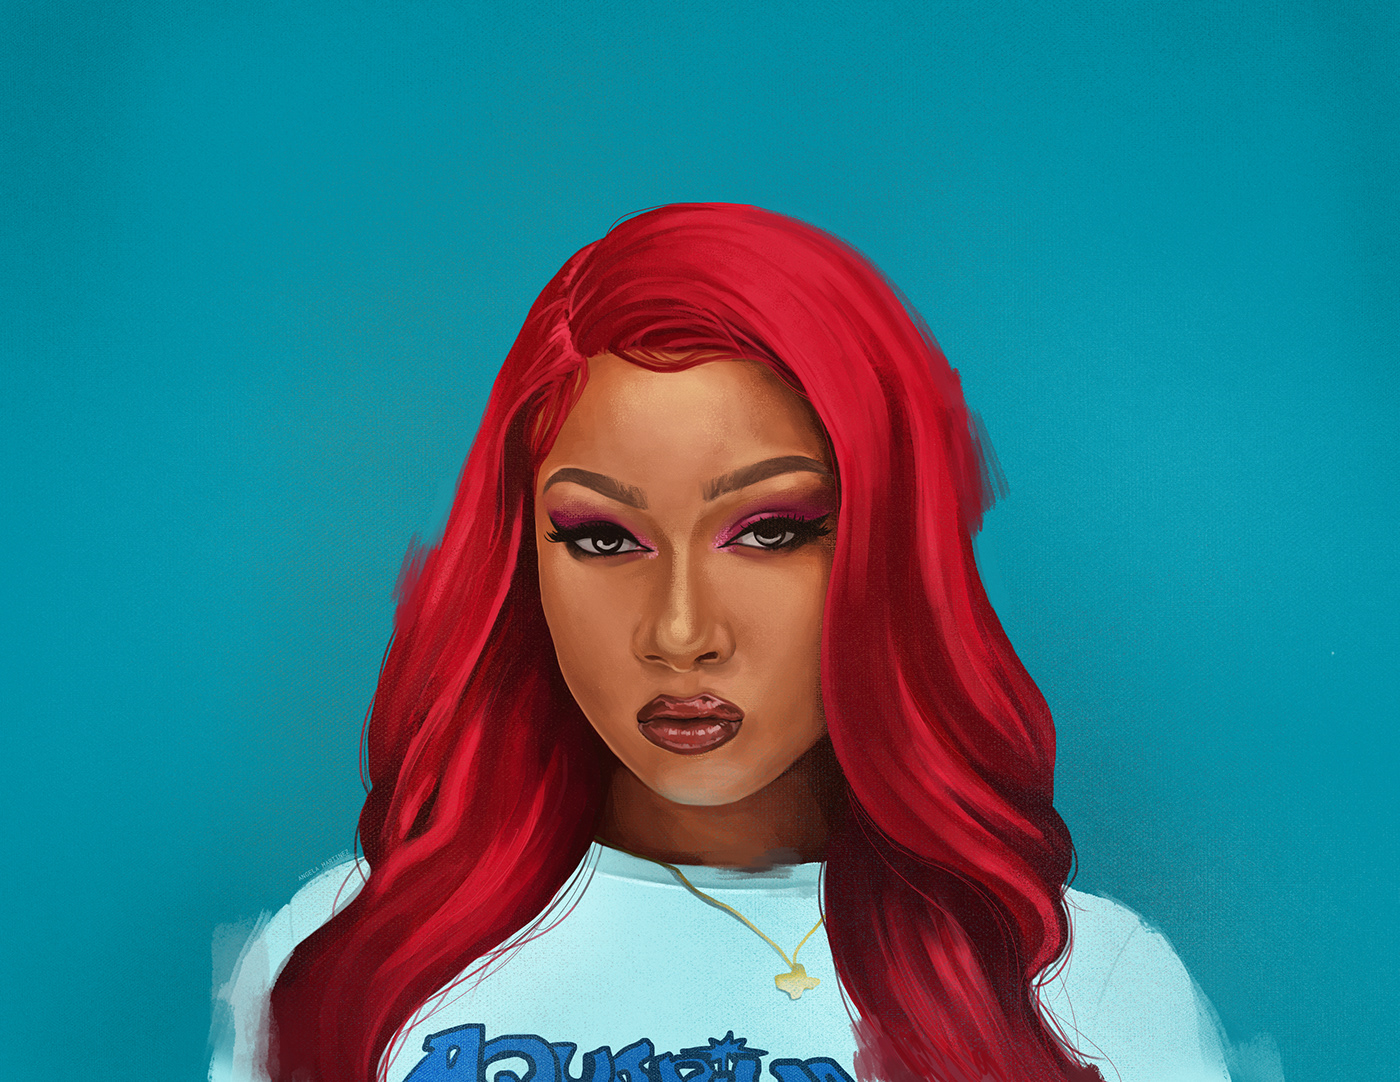 megan thee stallion on behance megan thee stallion on behance